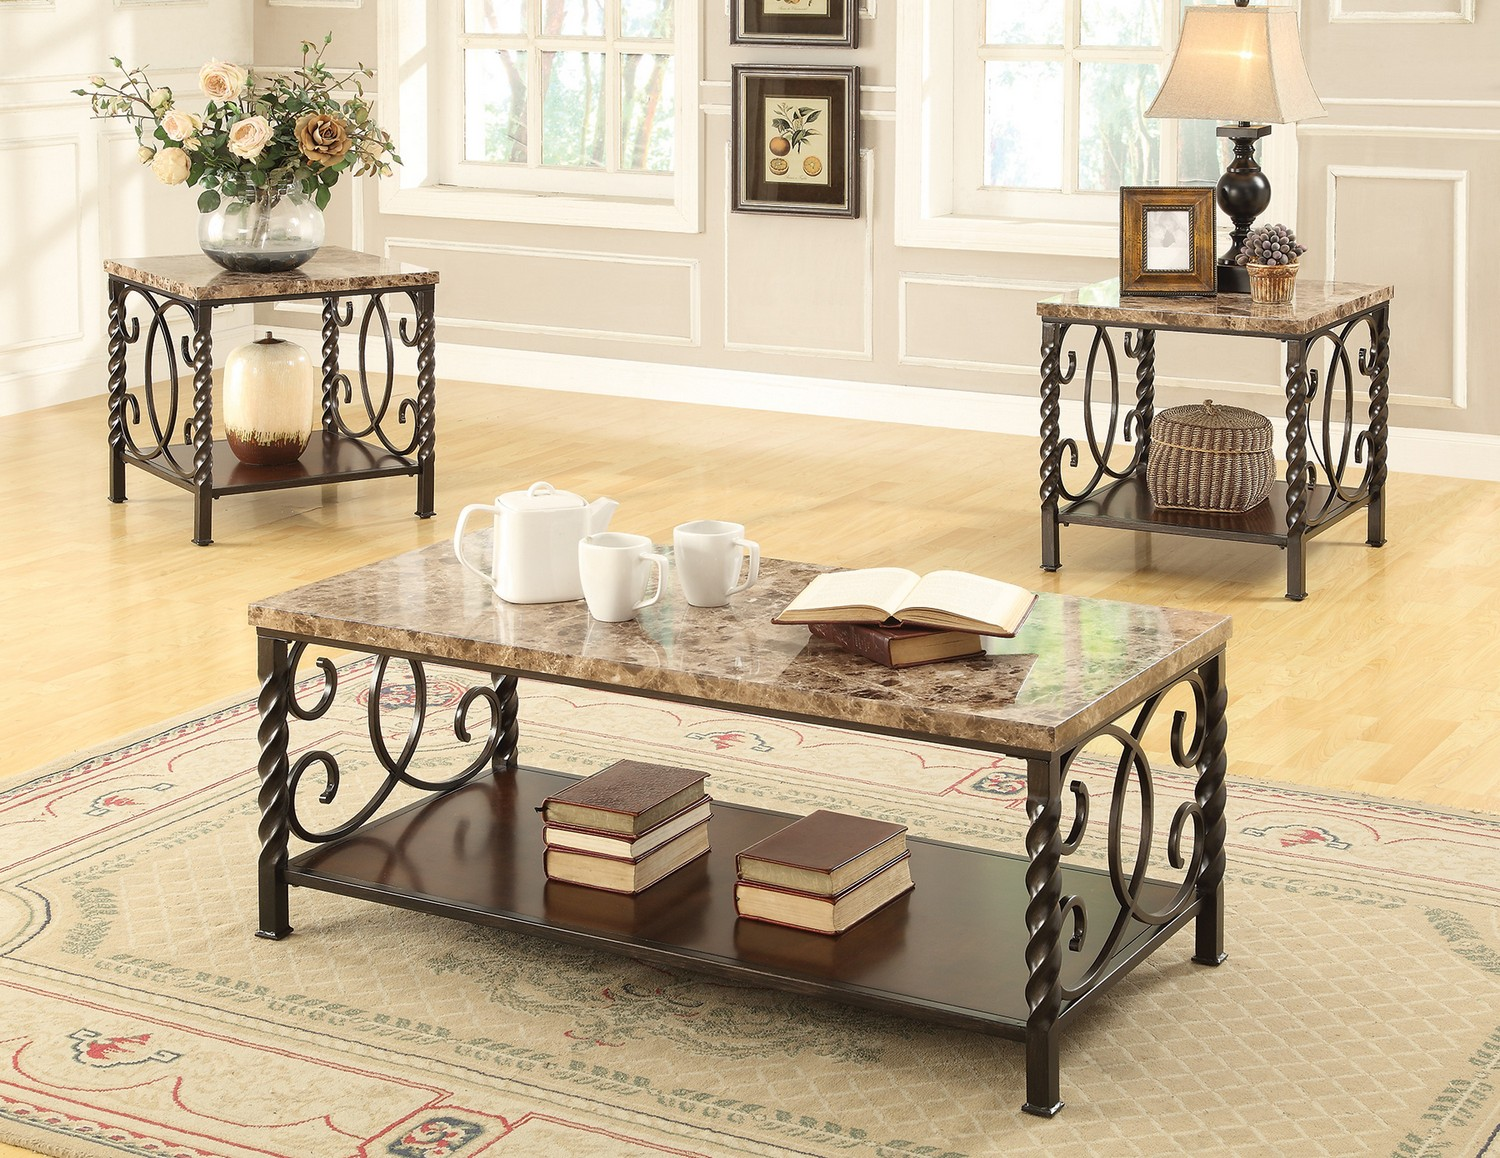 Coaster 701695 3-Pc Coffee/Cocktail Table Set - Dark Brown